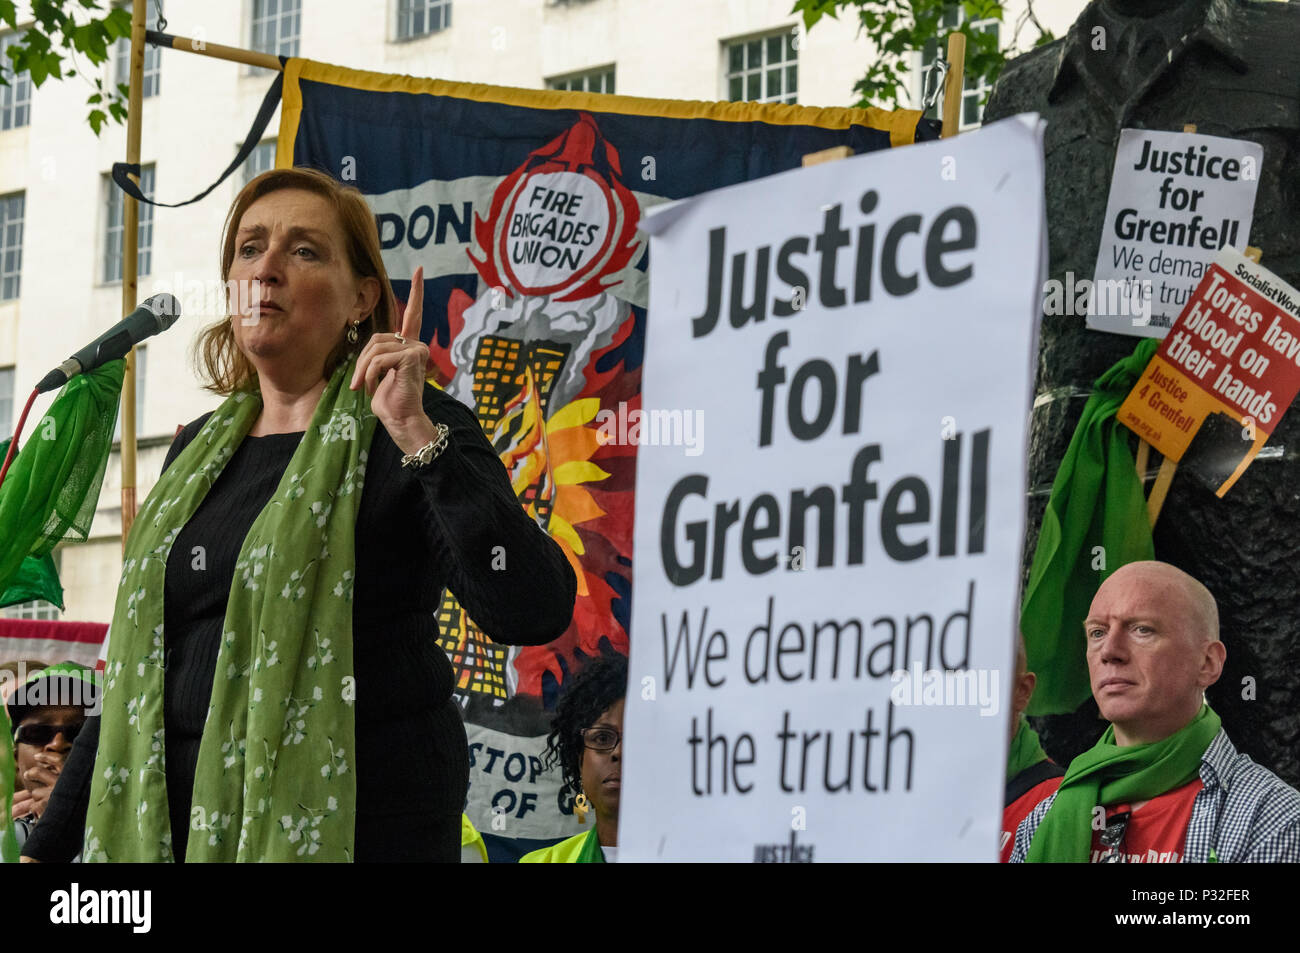 London, UK. 16th June 2018. Kensington Labour MP Emma Dent Coad speaks at the protest at Downing St in solidarity with the 72 killed and the survivors of the Grenfell fire a year ago organised by Justice4Grenfell and the FBU (Fire Brigades Union.) After some speeches they marched to the Home Office for a brief protest before returning to Downing St for more speeches. m Credit: Peter Marshall/Alamy Live News - Stock Image